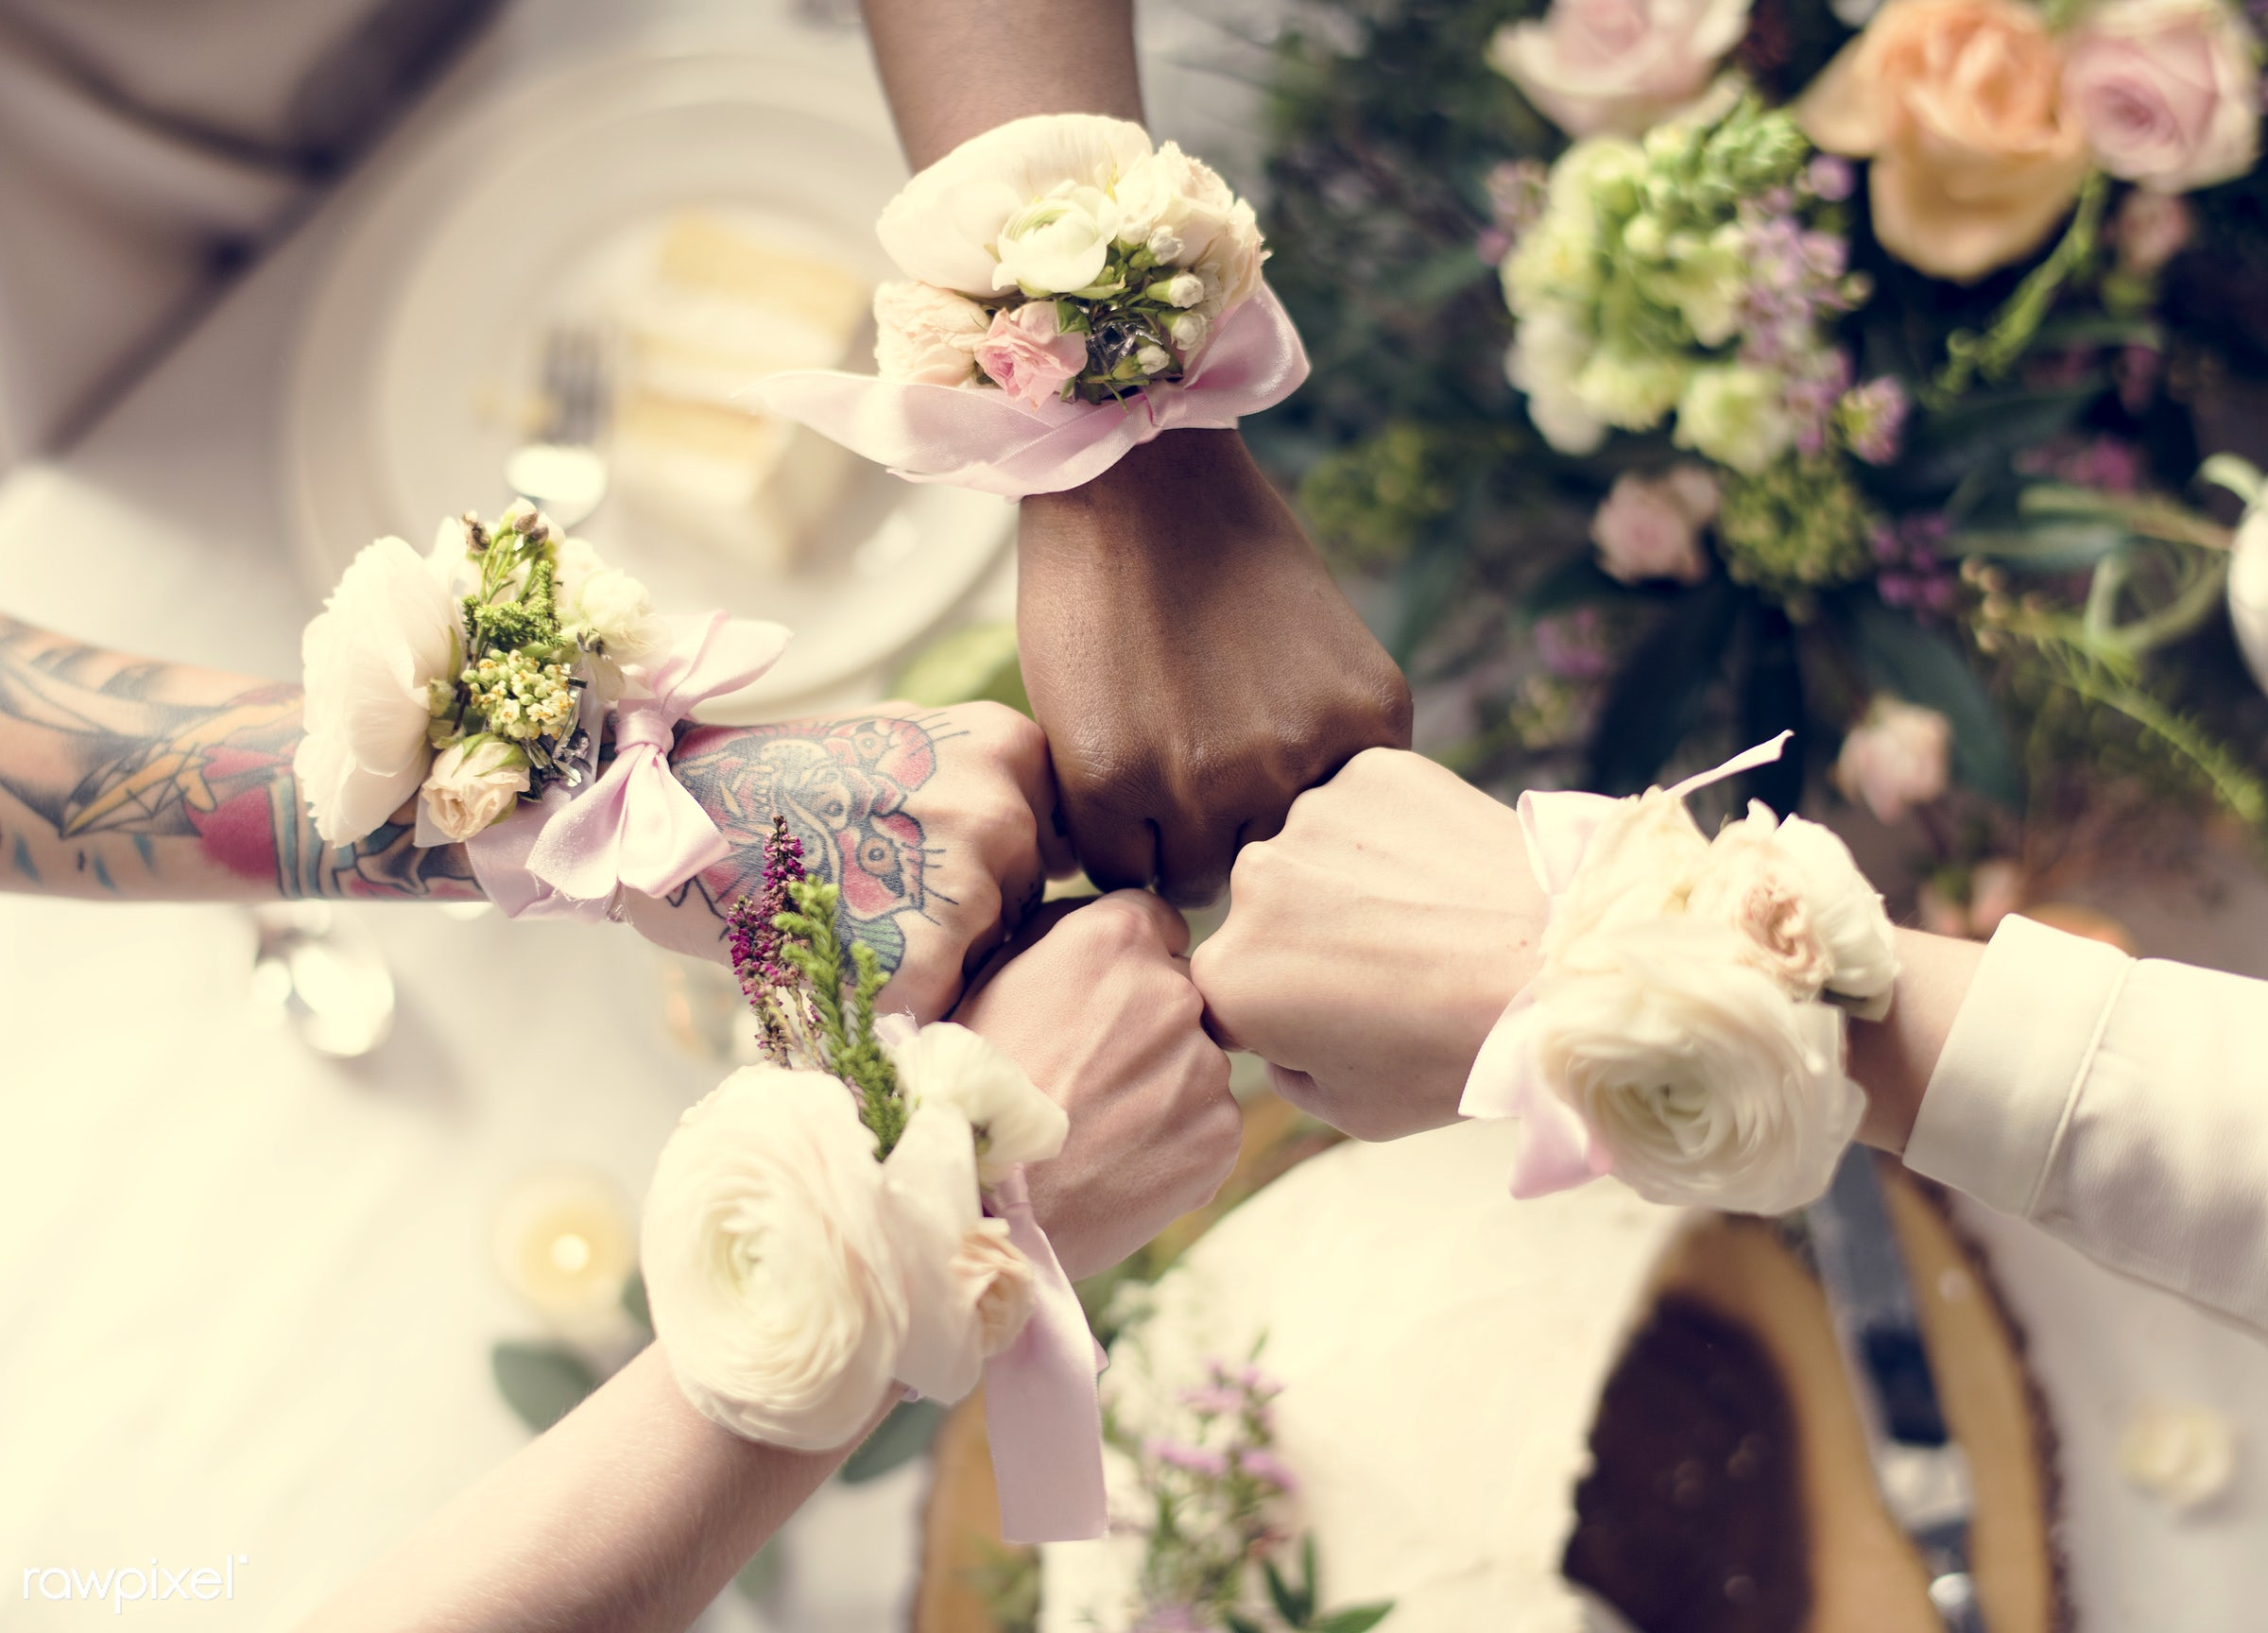 expression, bouquet, person, girlfriends, fists, show, smitten, people, together, love, friends, married, woman, event,...